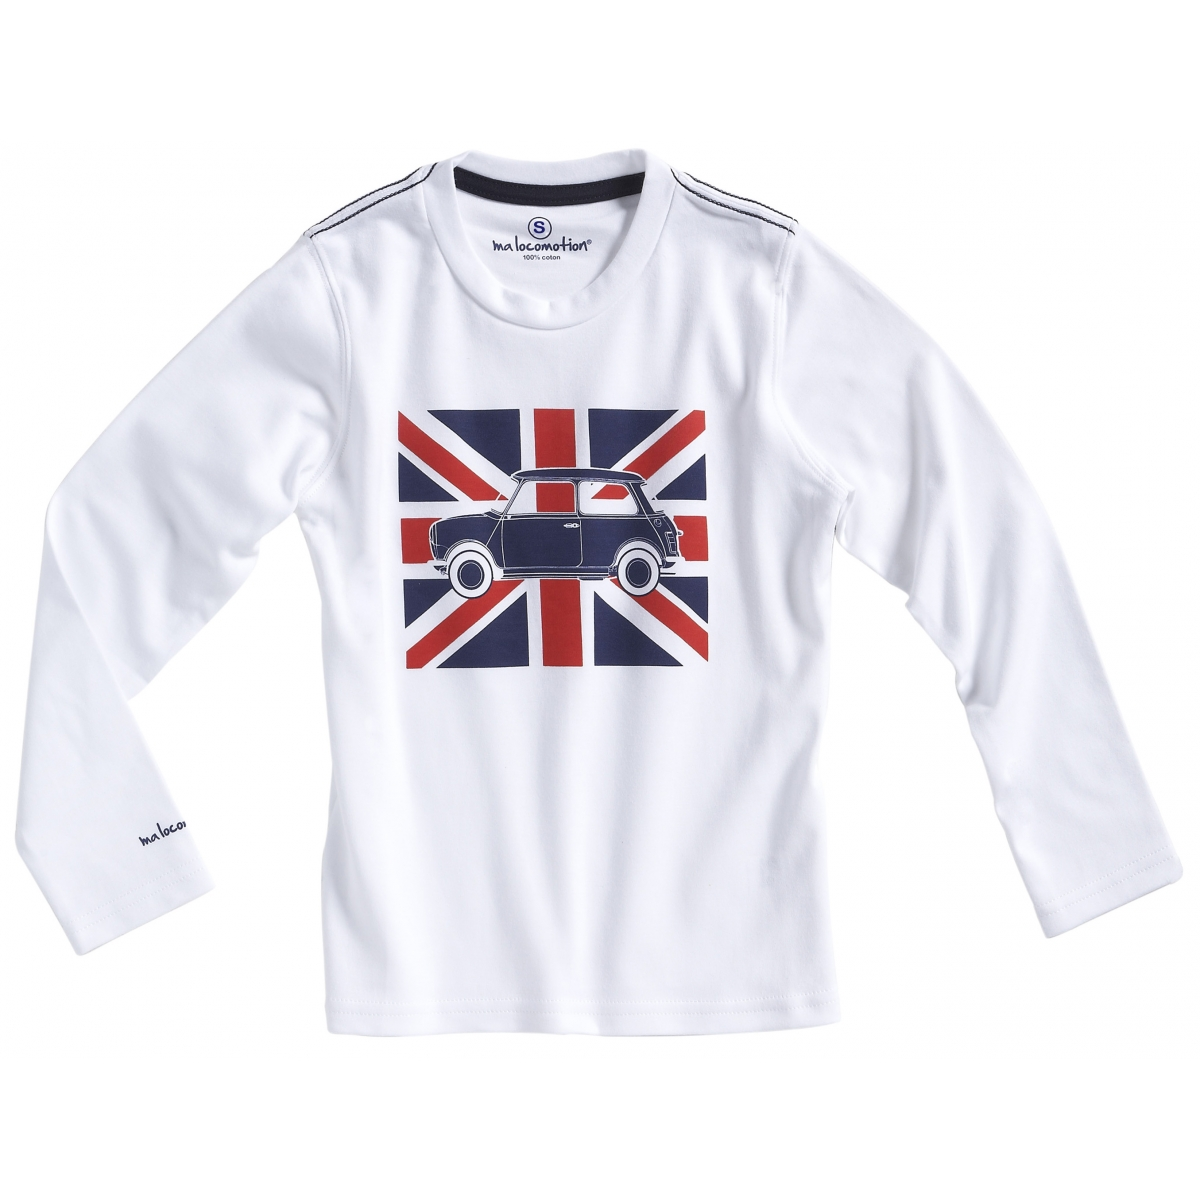 Long sleeves Austin Mini Union Jack t-shirt for adults - white